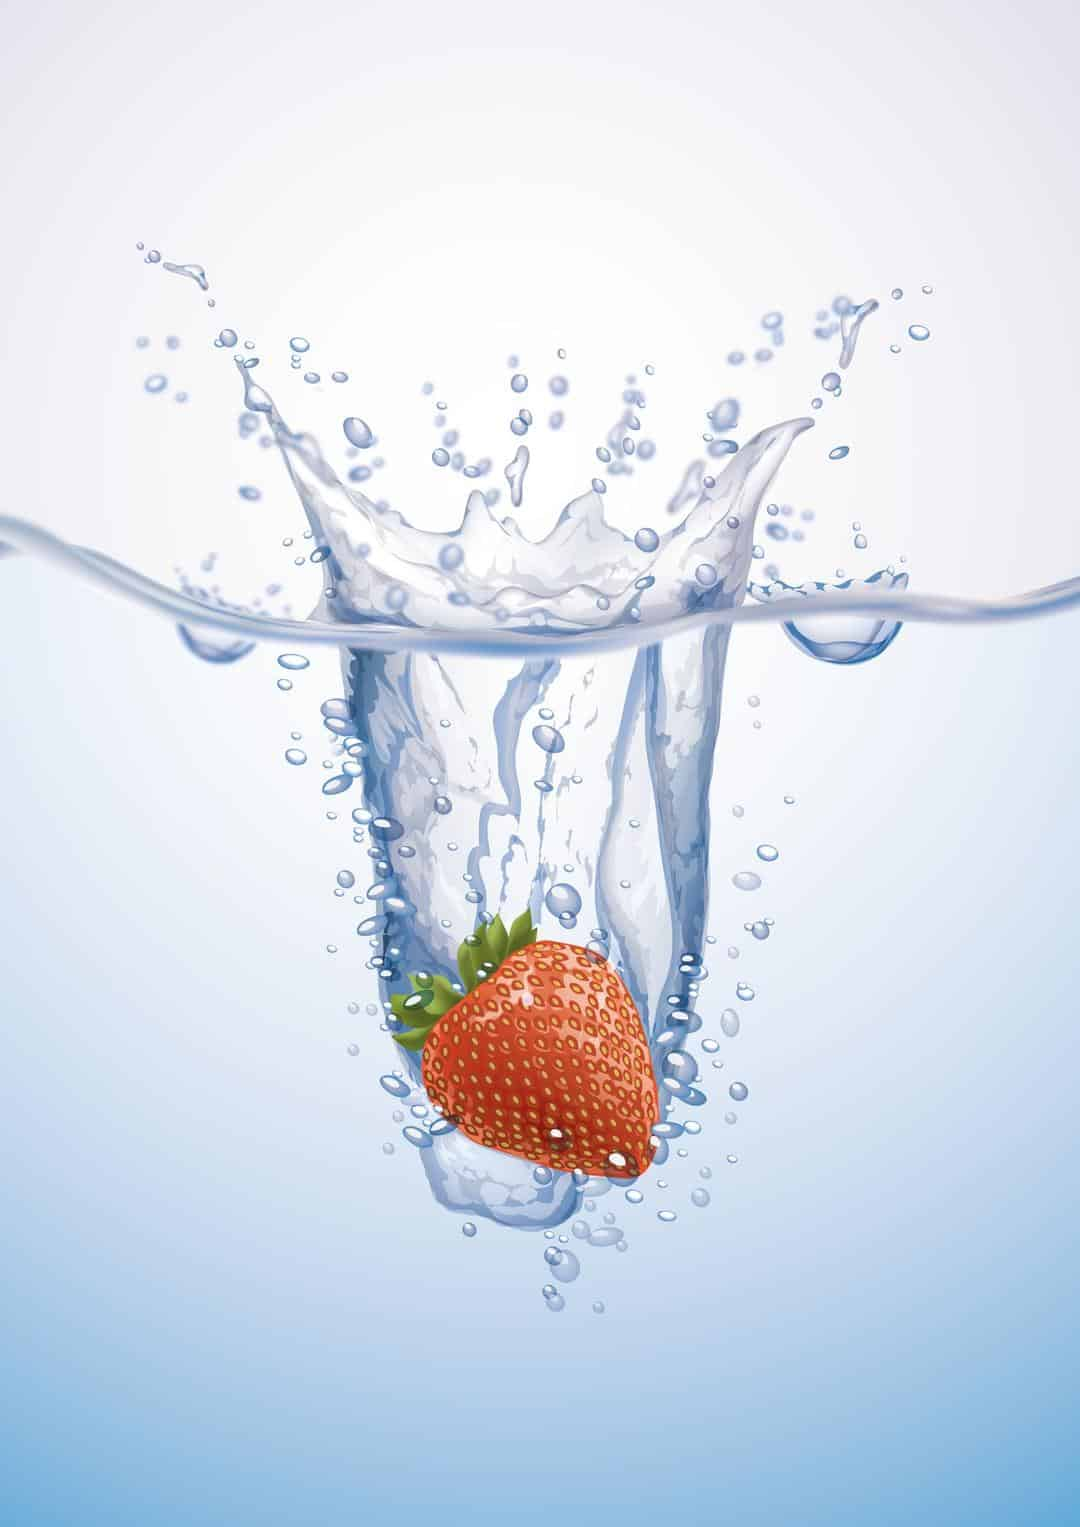 Water detox - Homemade Strawberry Multivitamin Water 1